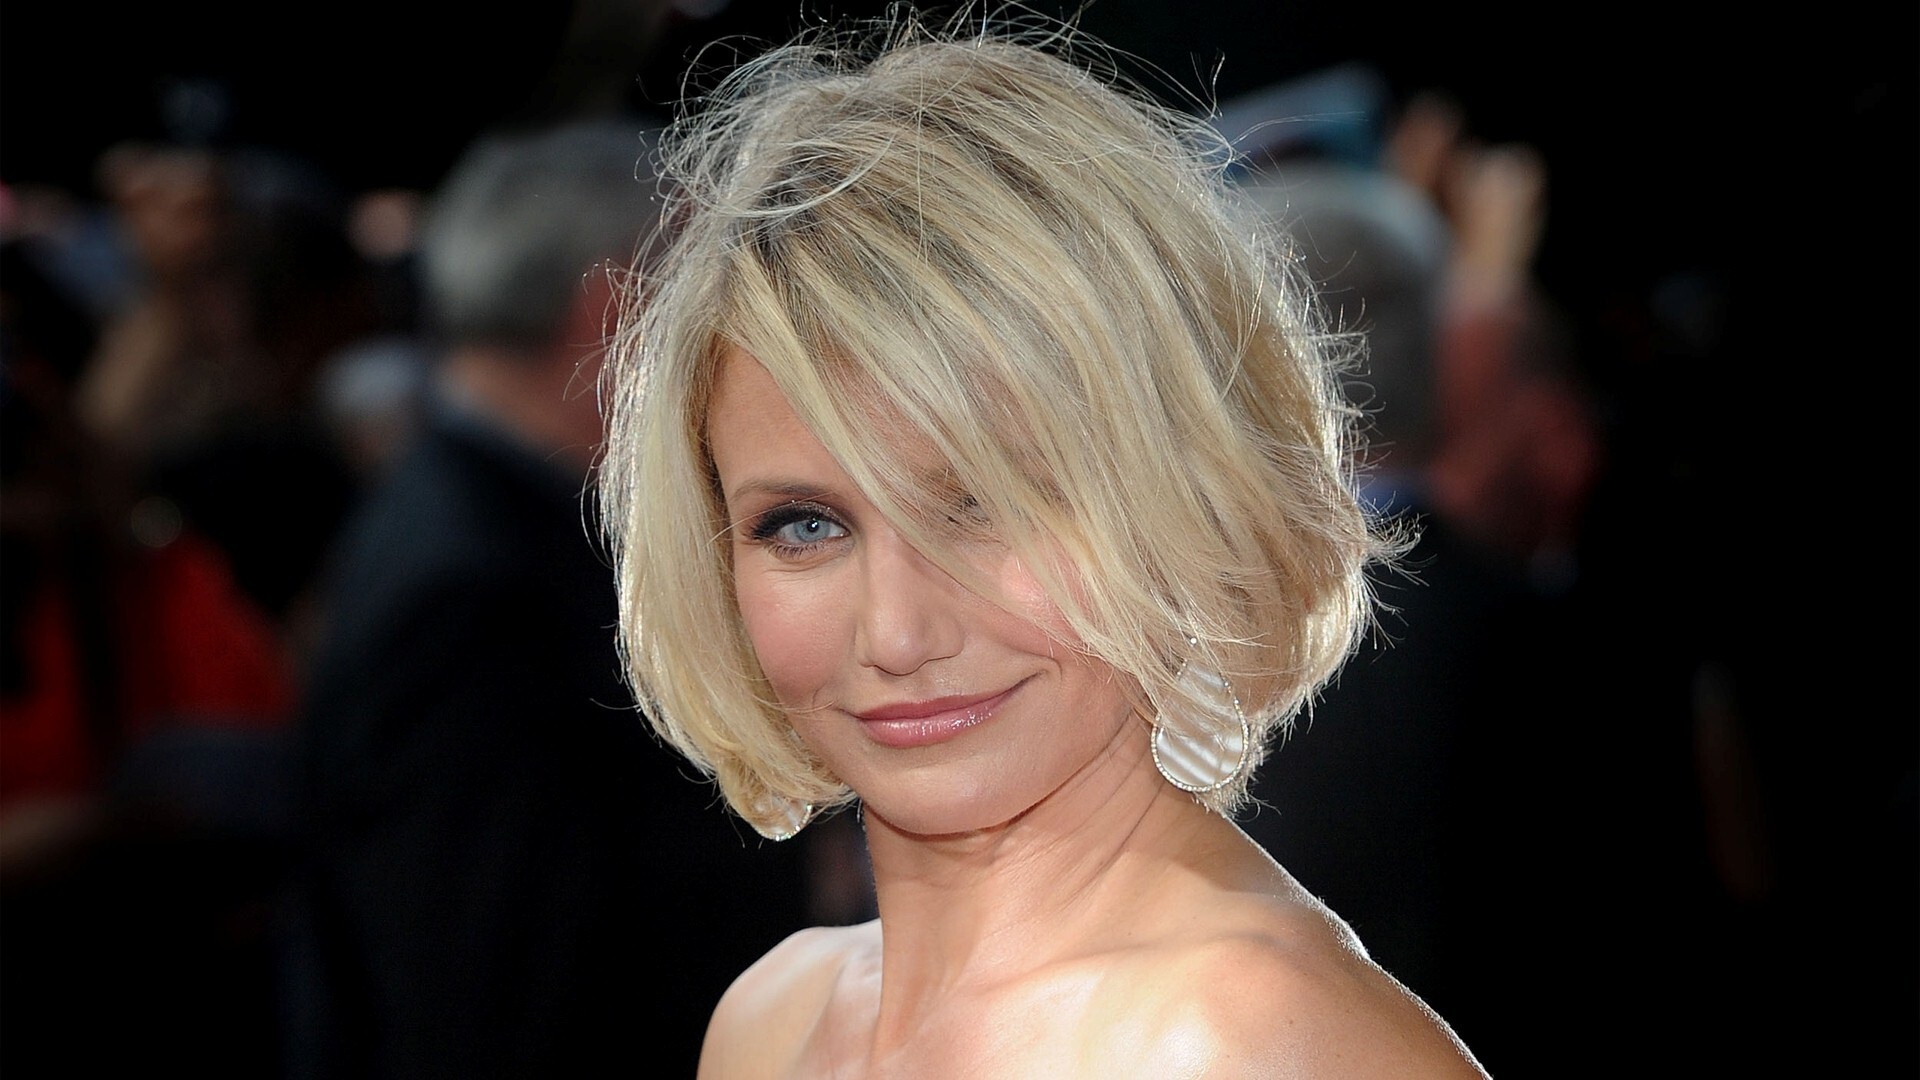 Short Hair Style of Cameron Diaz Photo | HD Wallpapers